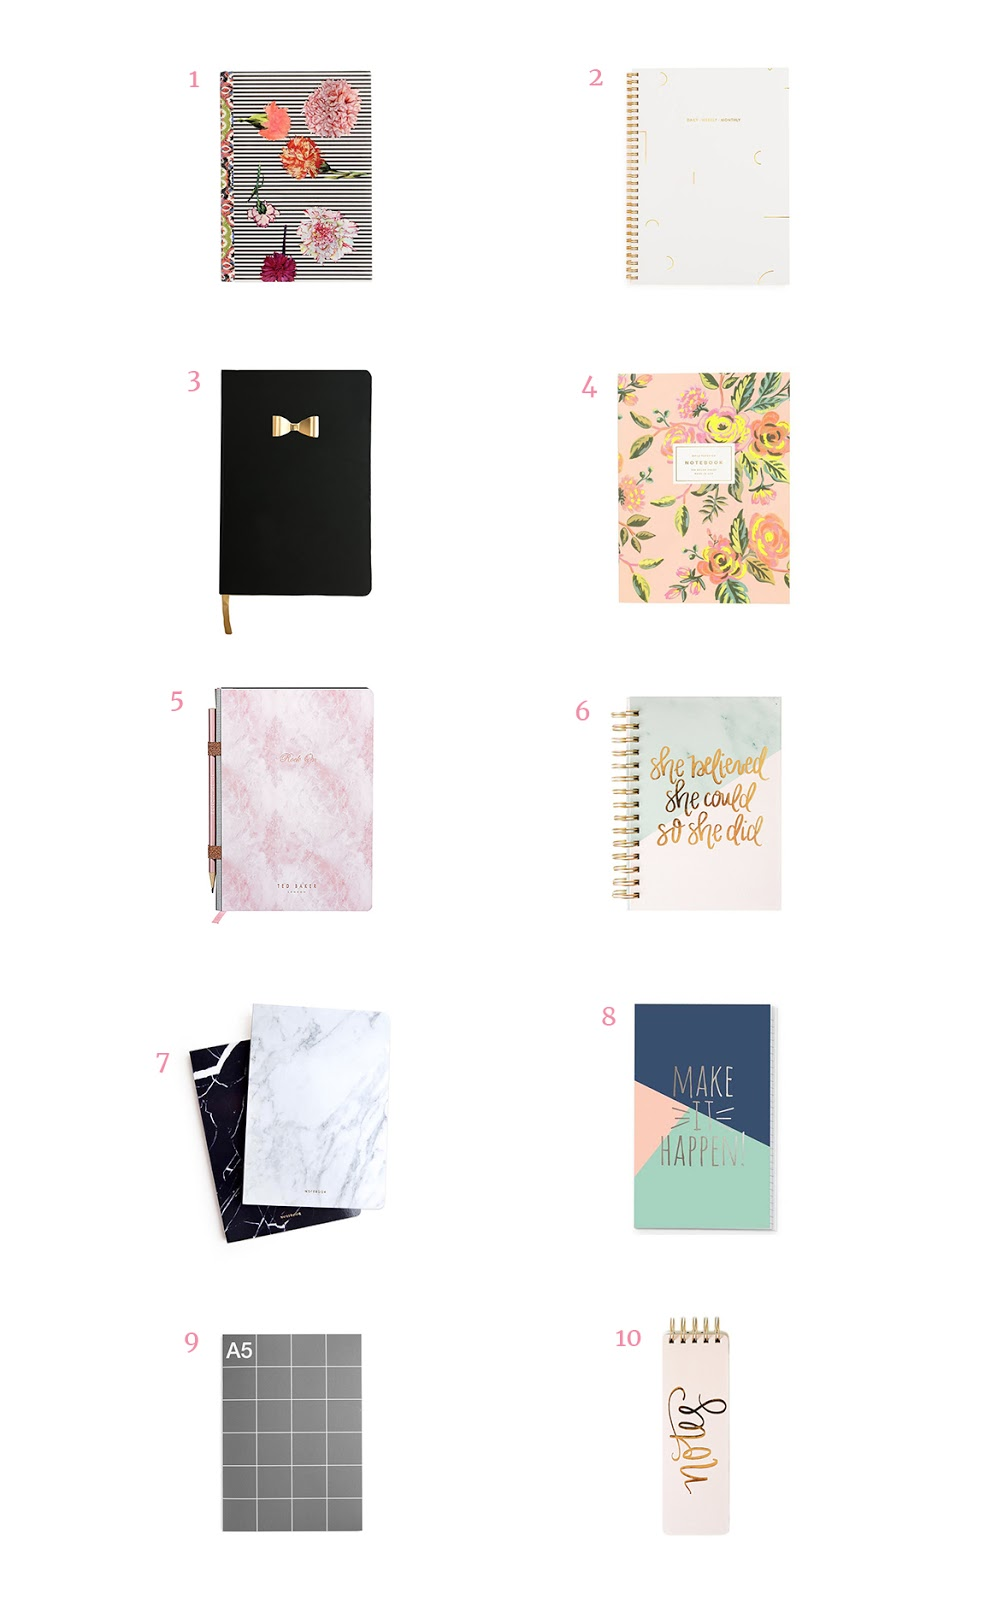 simple planners, notebooks and journals to organize your creative ideas